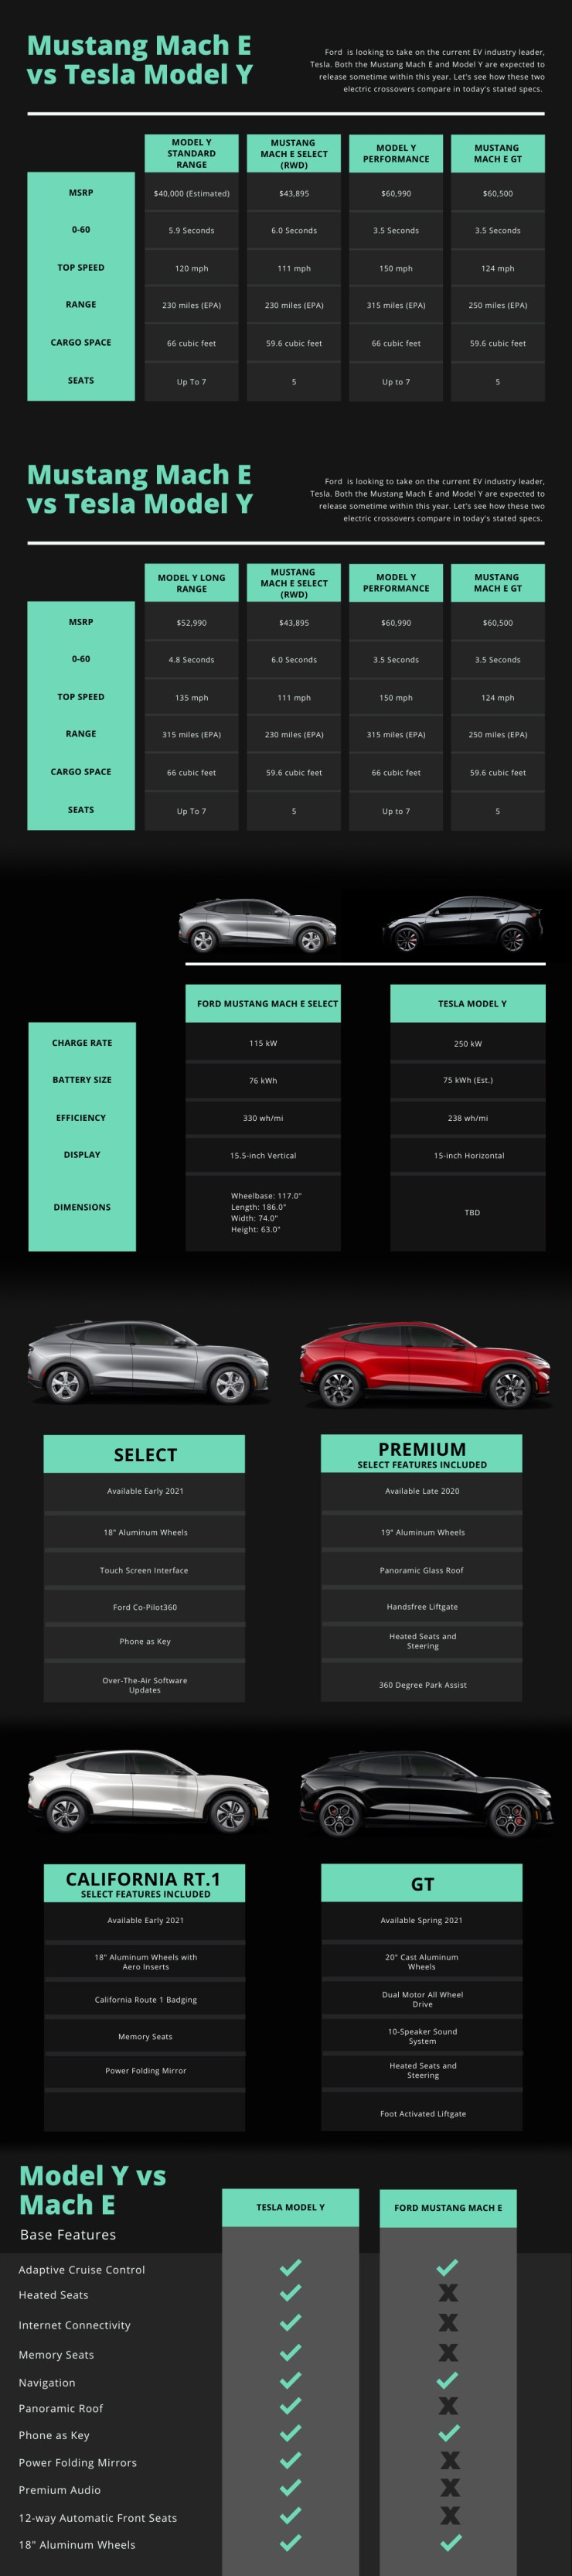 Ford Mustang Mach-E vs Tesla Model Y Compared - Ford vs Tesla